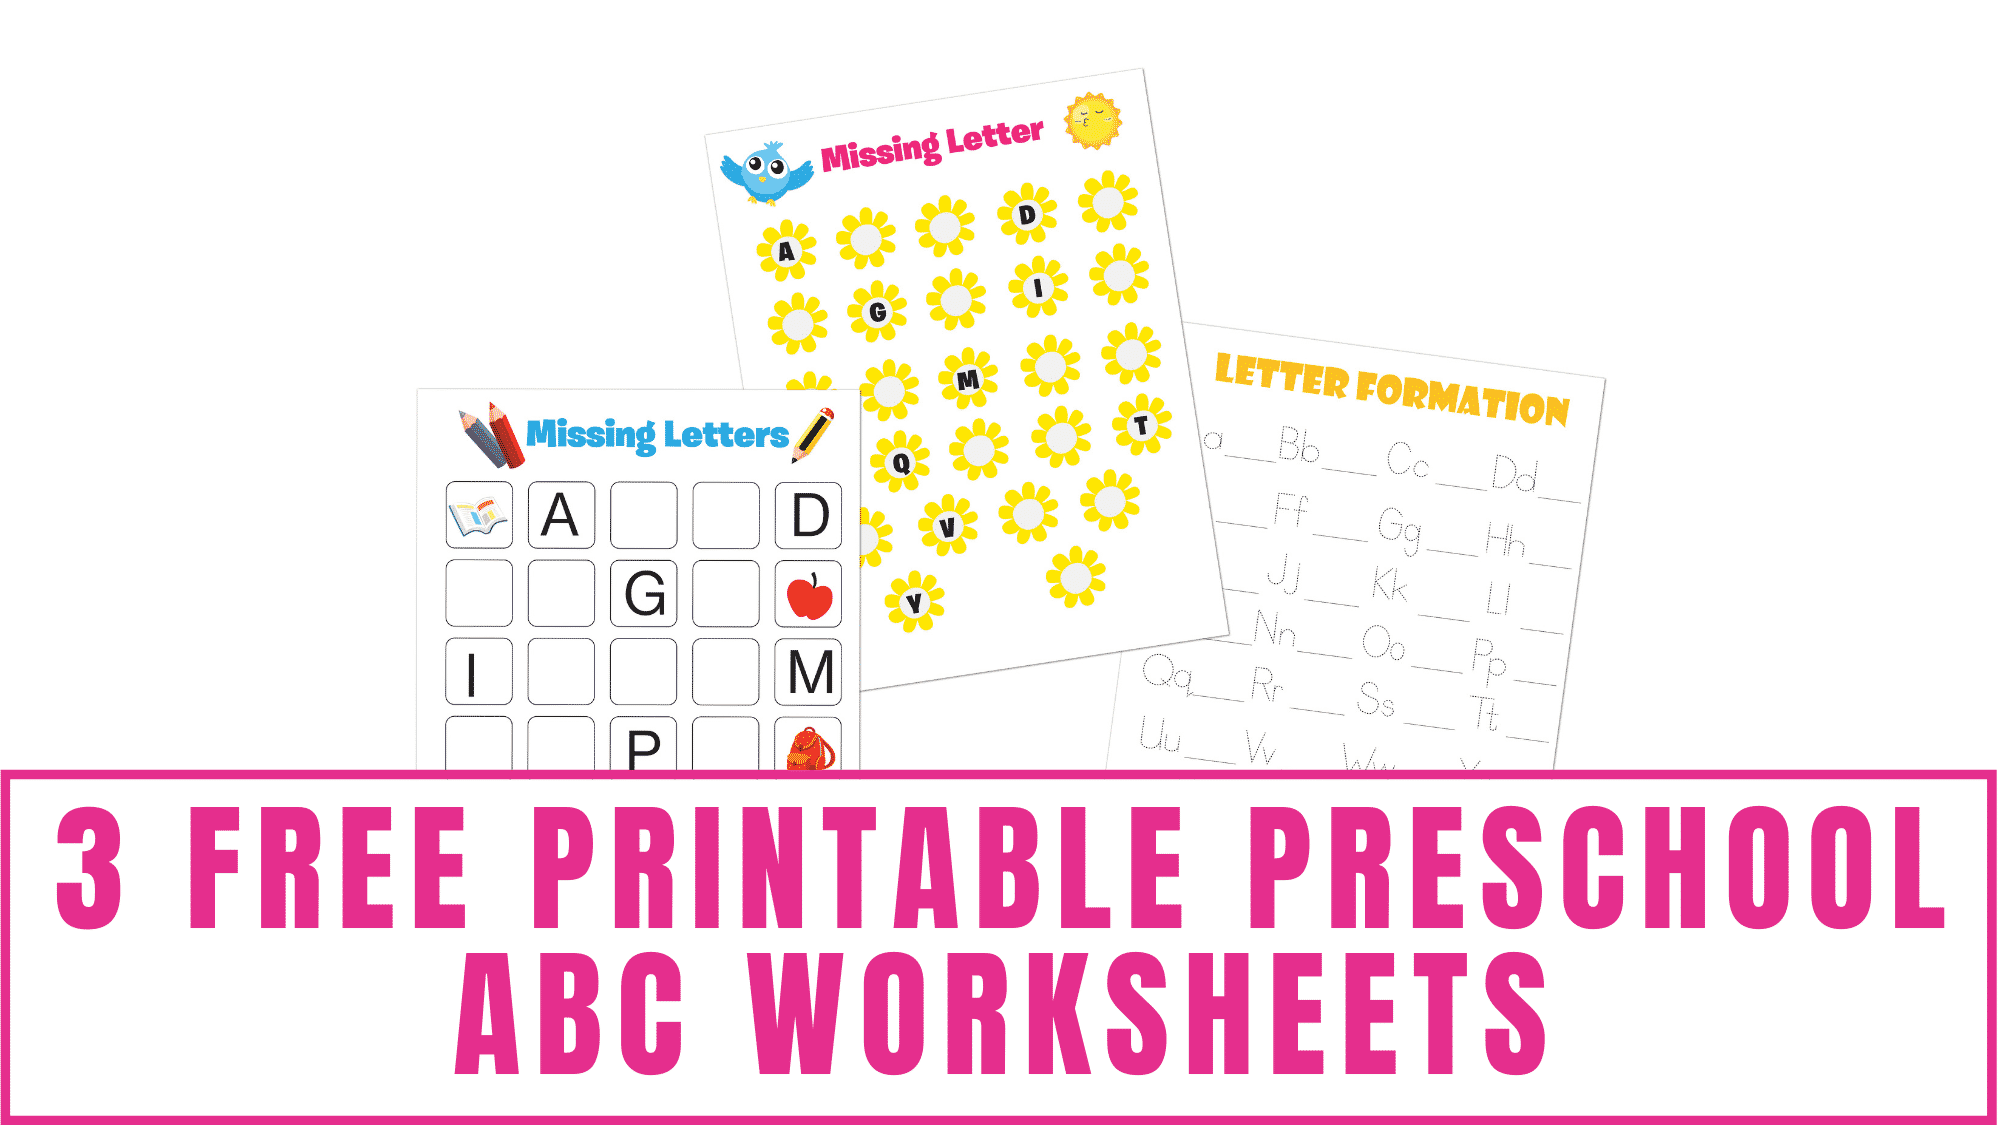 In addition to letter writing these free printable preschool ABC worksheets can help with letter recognition too.